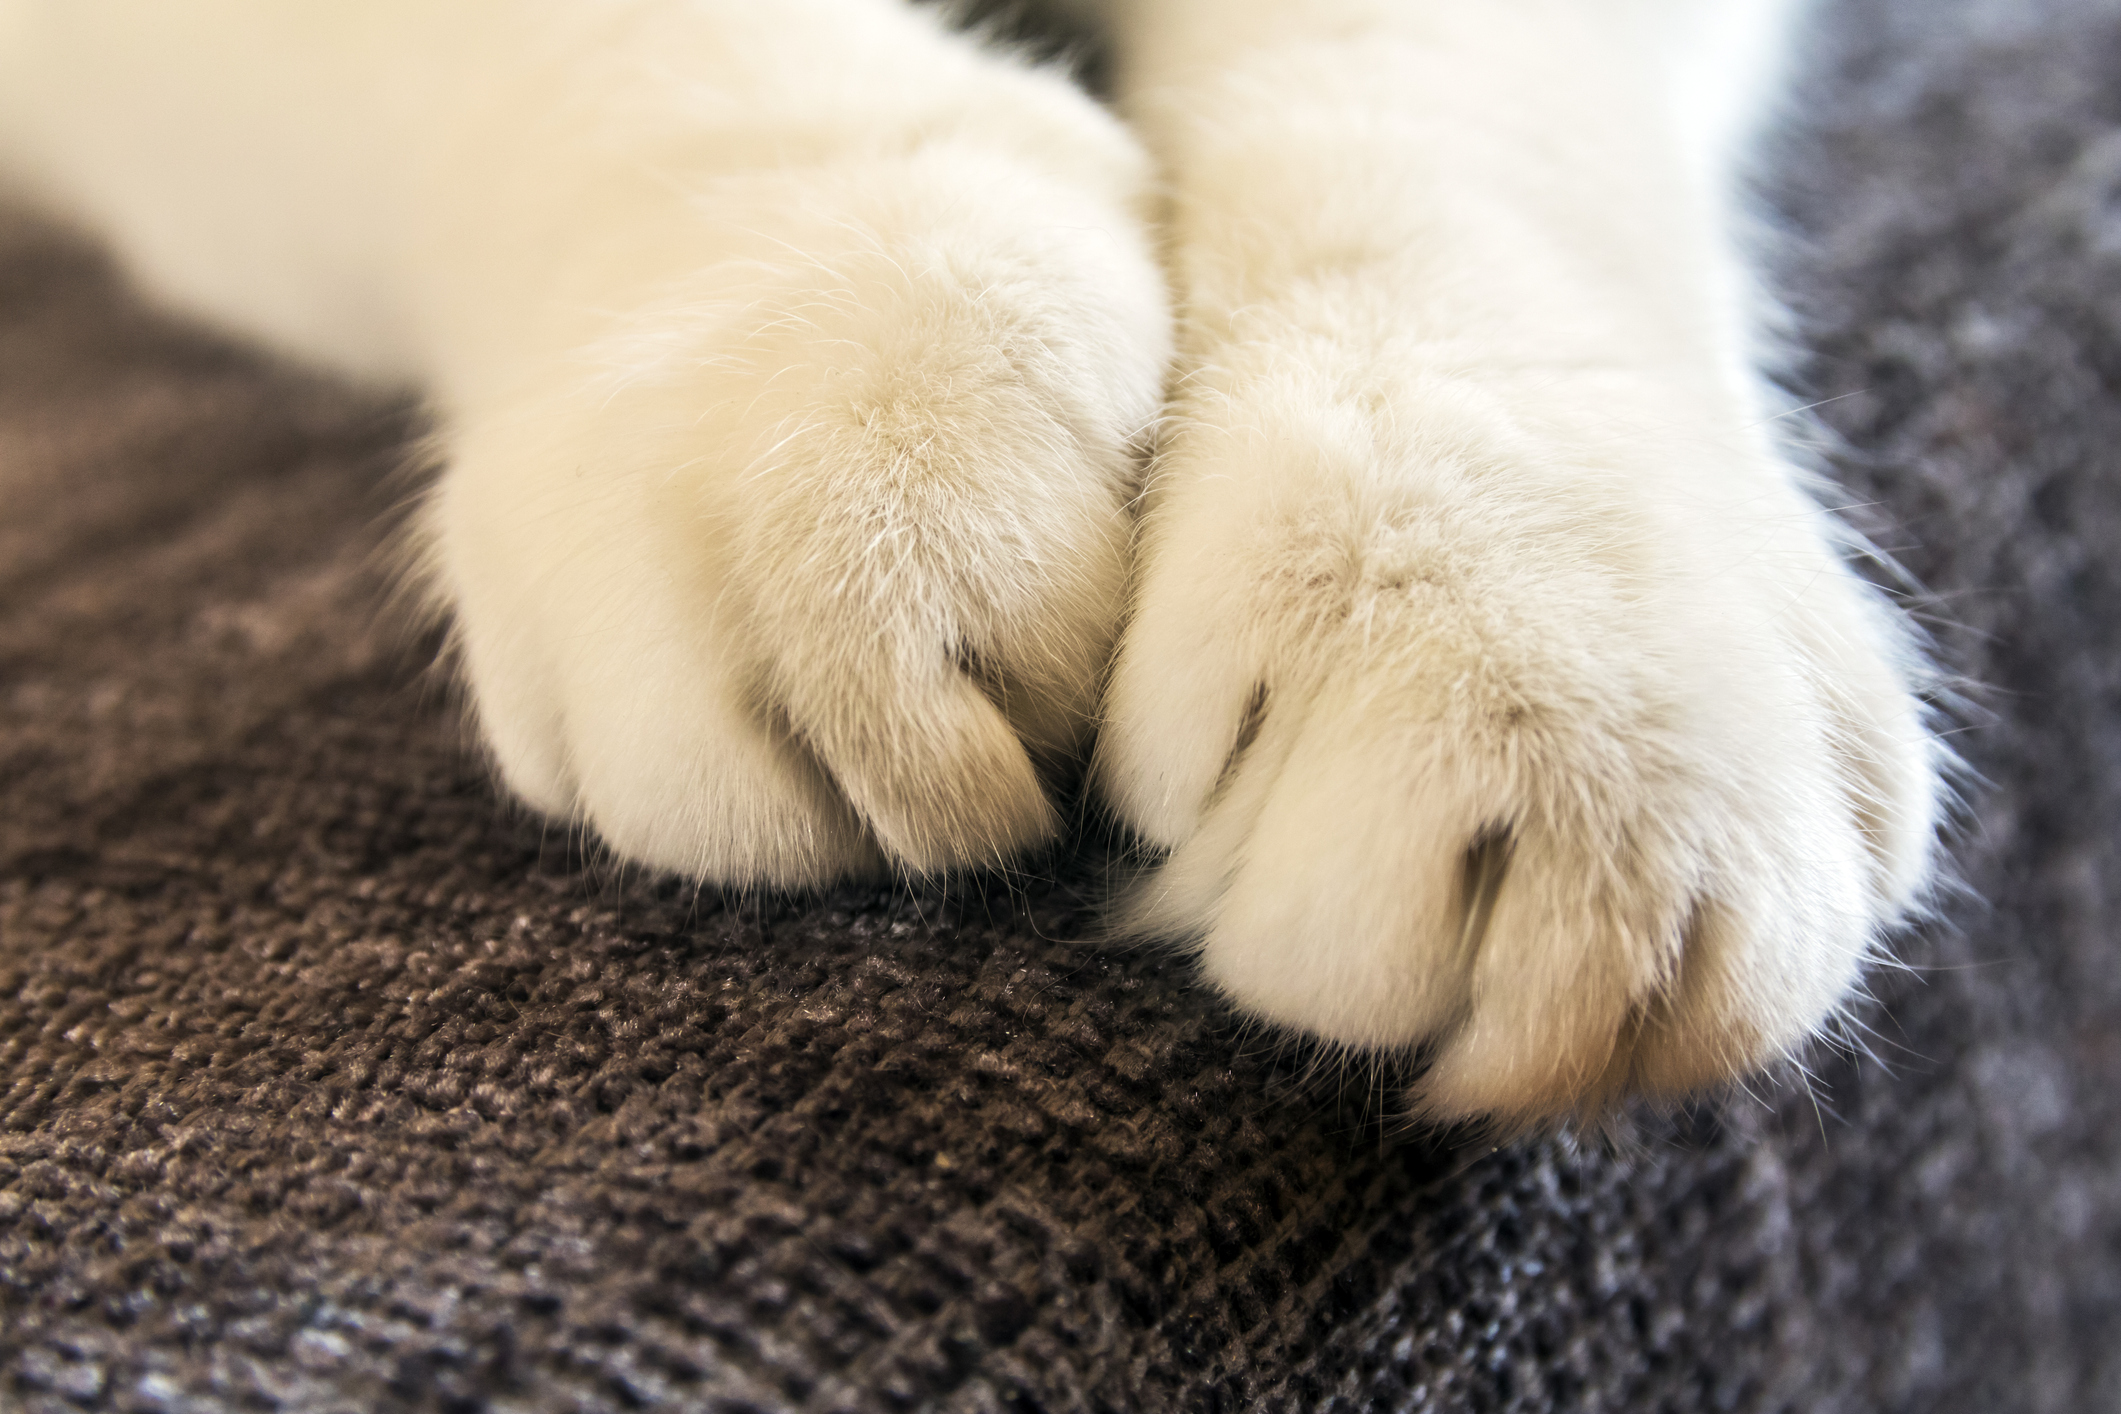 a cat's paws with nails